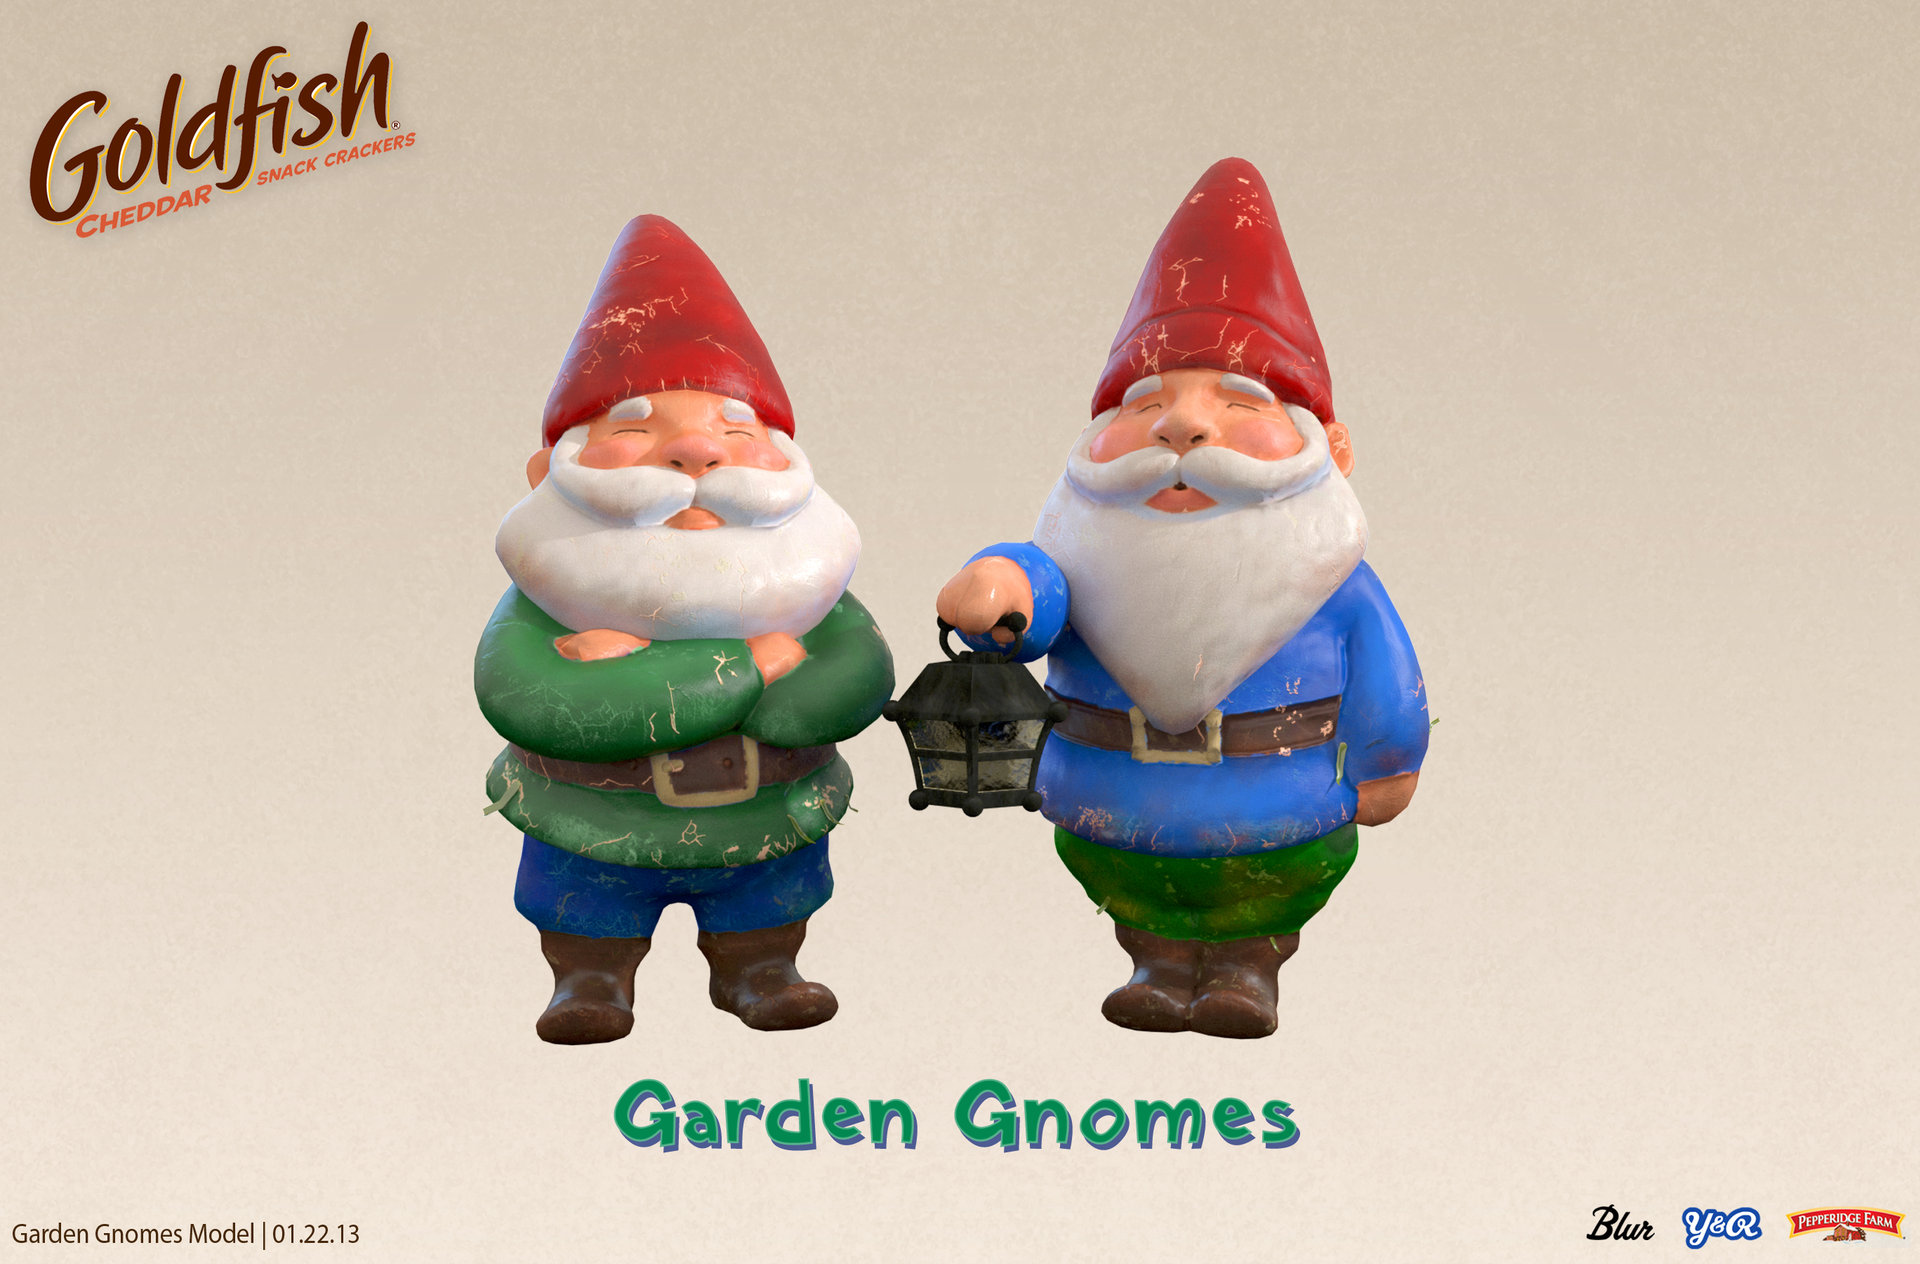 Goldfish_S6_MODEL_Gnomes_2013-01-22.jpg